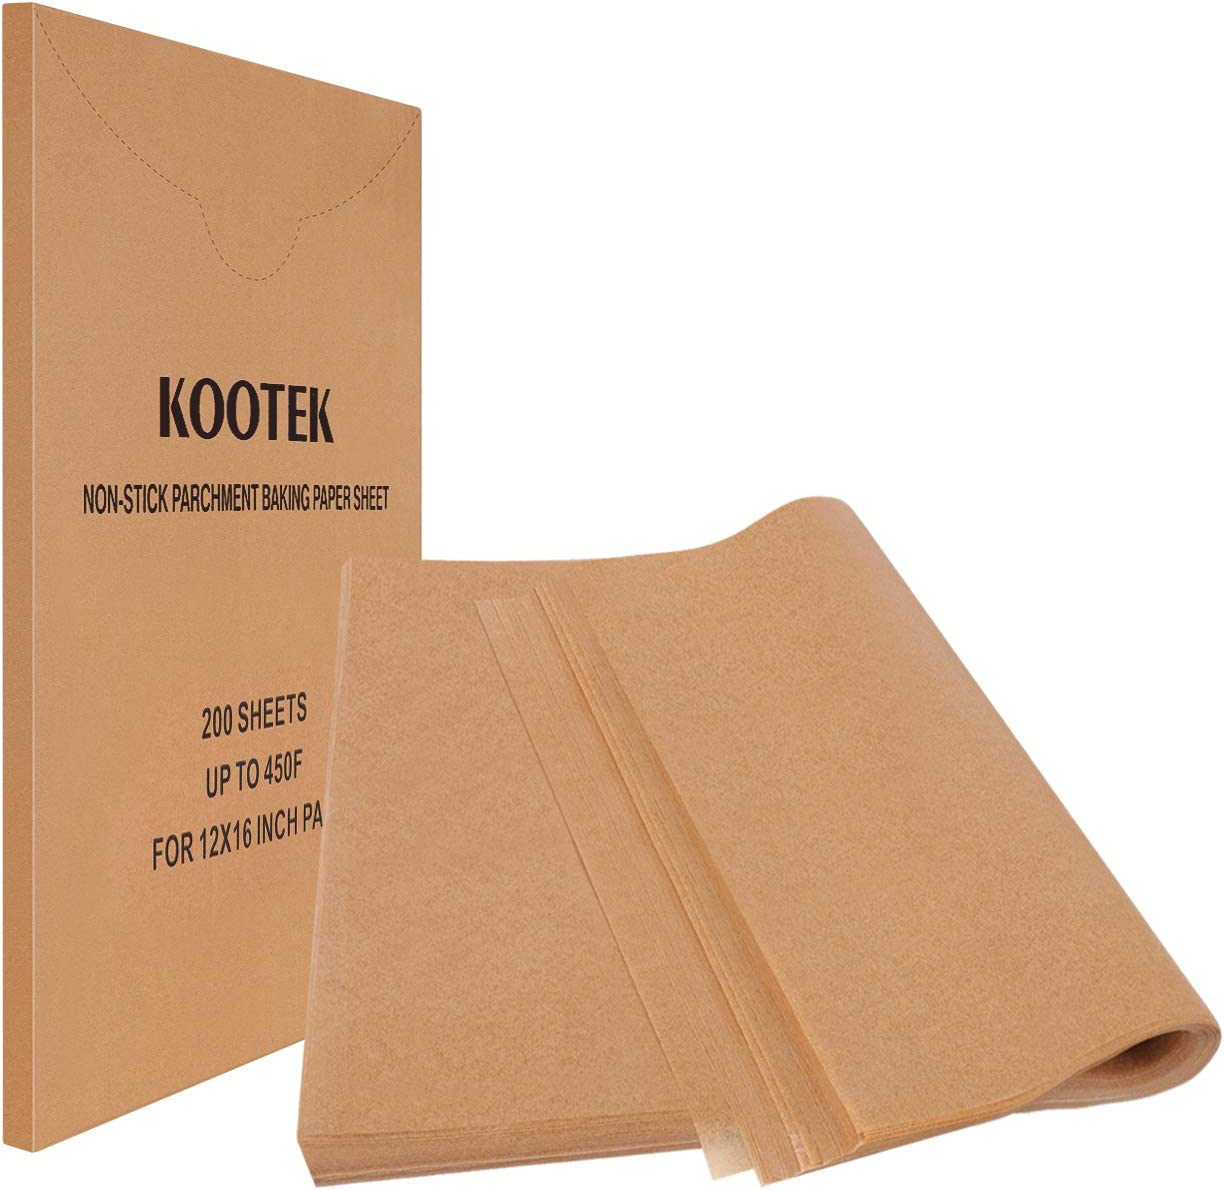 Kootek 200 Pcs Parchment Paper Sheets, 12 X 16 Inch Non-Stick Unbleached Baking Sheet Cooking Wax Papers, Pre-cut Square Liner for Grilling Air Fryer Steaming Cookie Cupcake Bakers